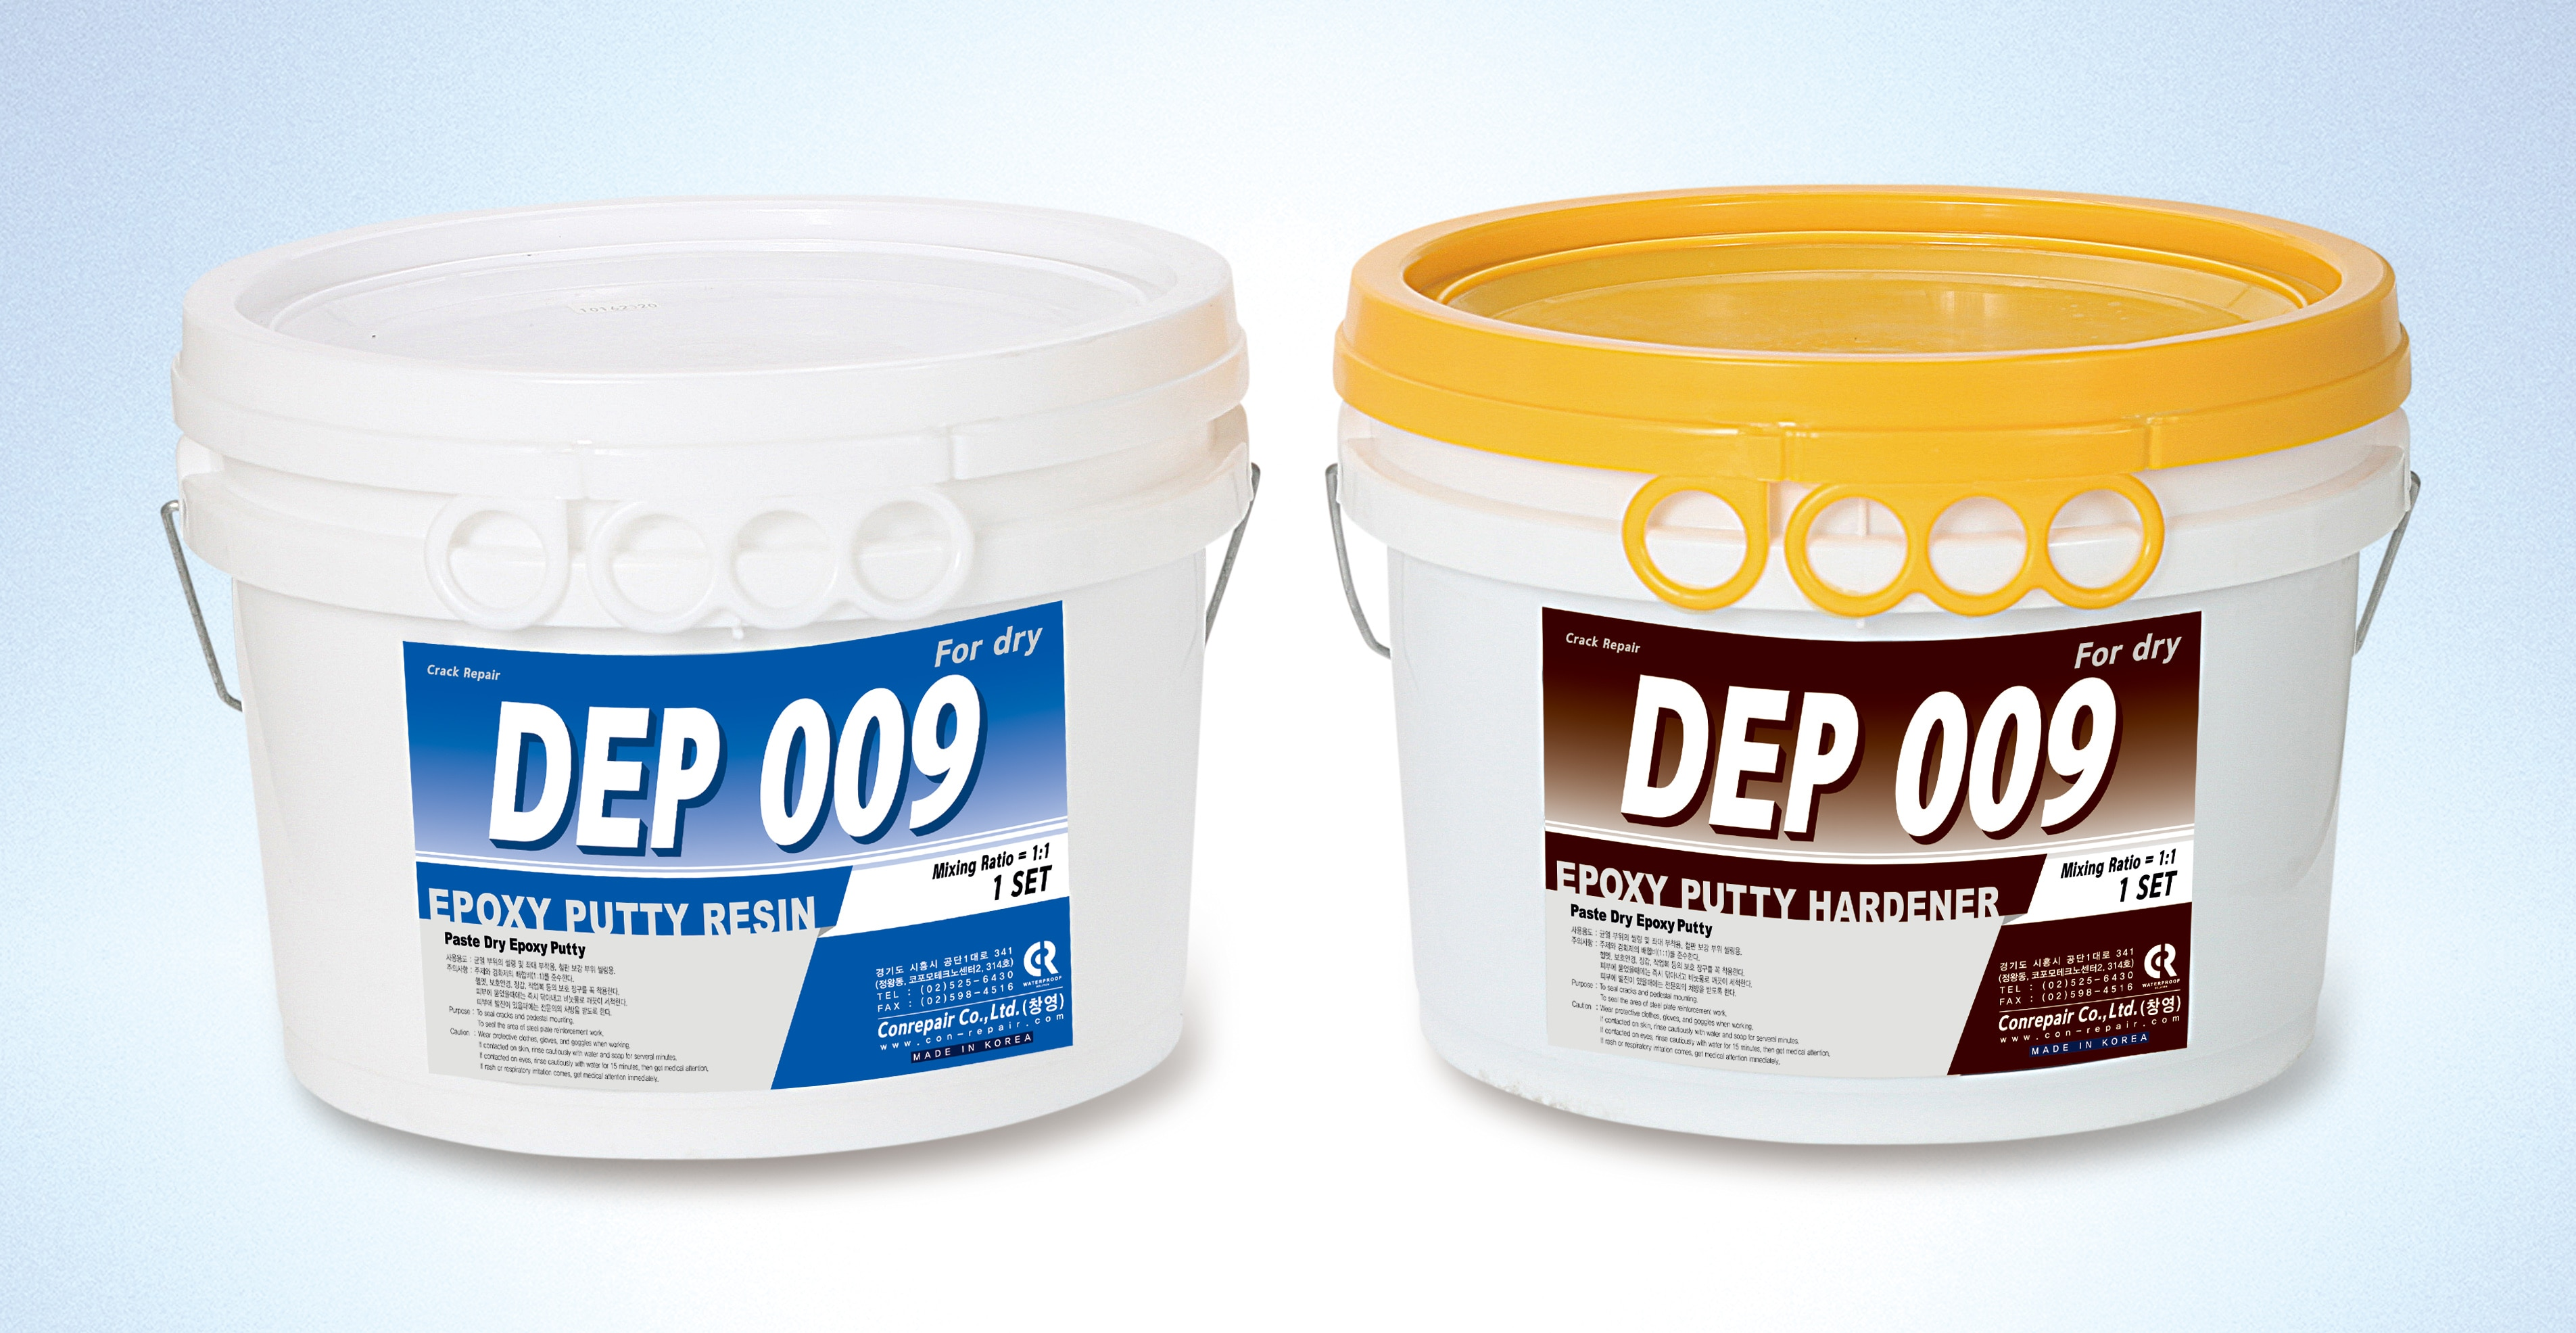 Epoxy Injection Epoxy Putty Resin Dep 009 In Adyar It Is A Typical High Strength